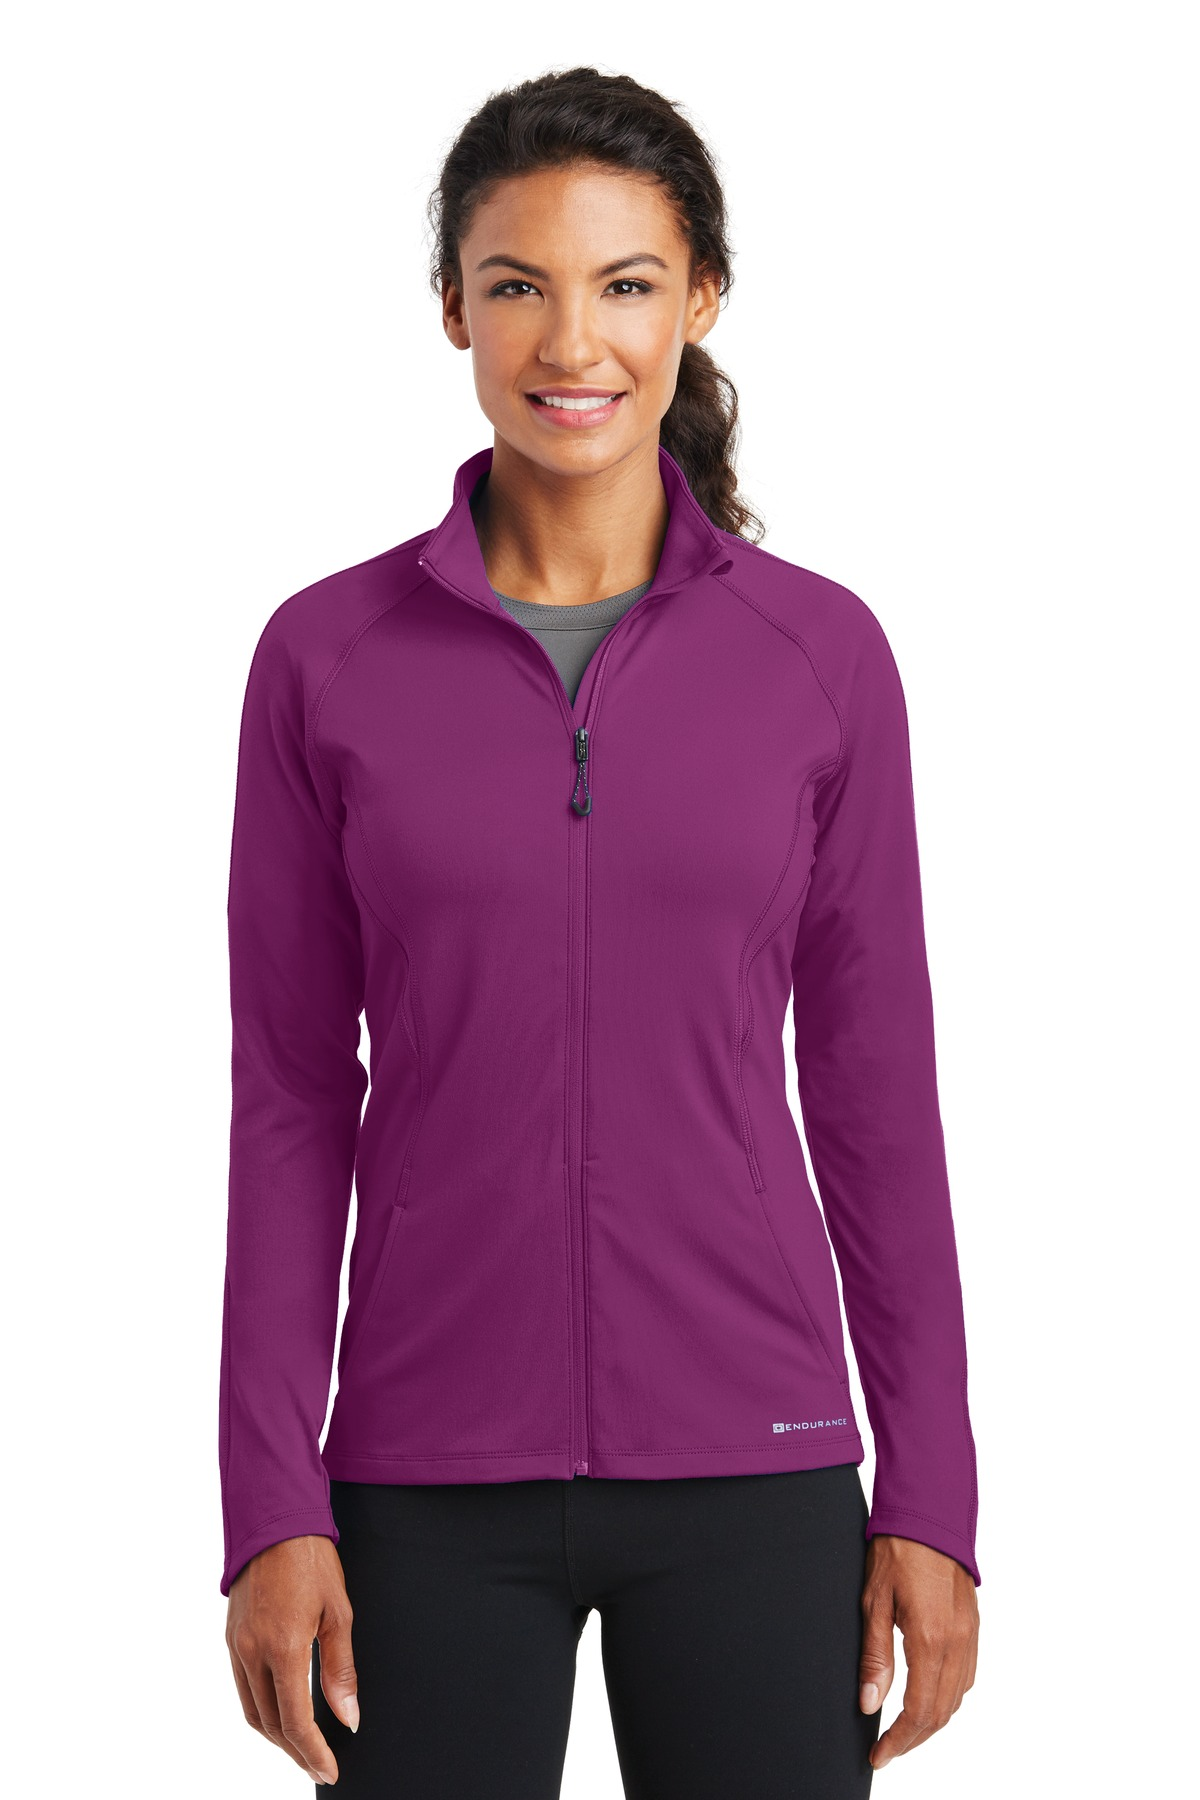 OGIO ®  ENDURANCE Ladies Radius Full-Zip. LOE551 - Purple Fuel